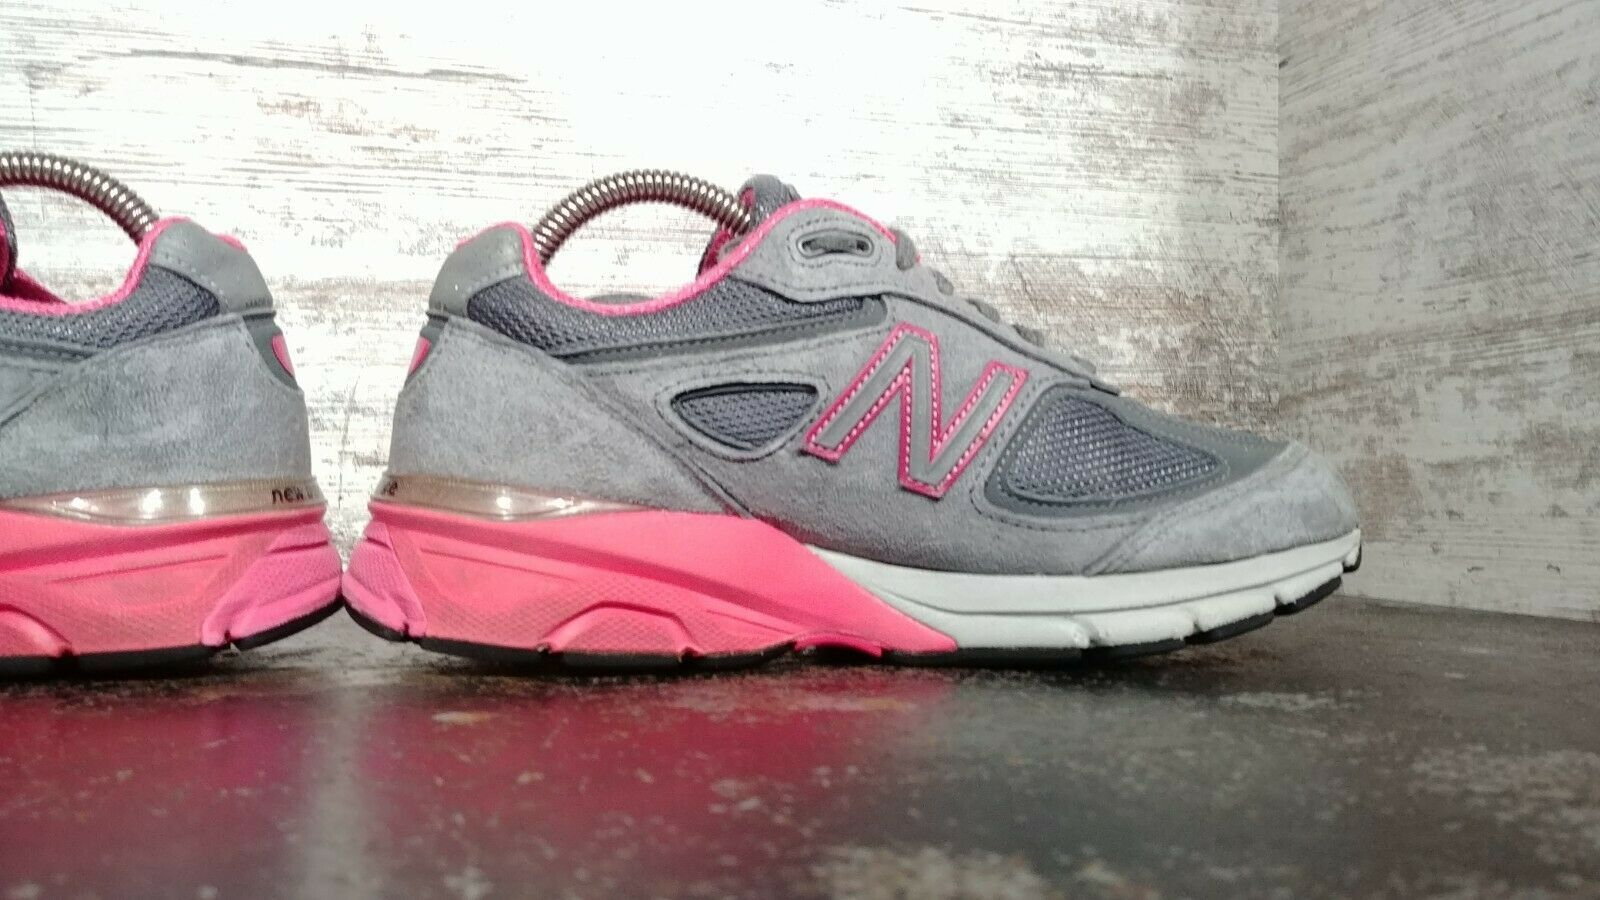 Womens New Balance 990 V3 Running Shoes SZ 7 D Wide Used Sneakers Trainers image 7